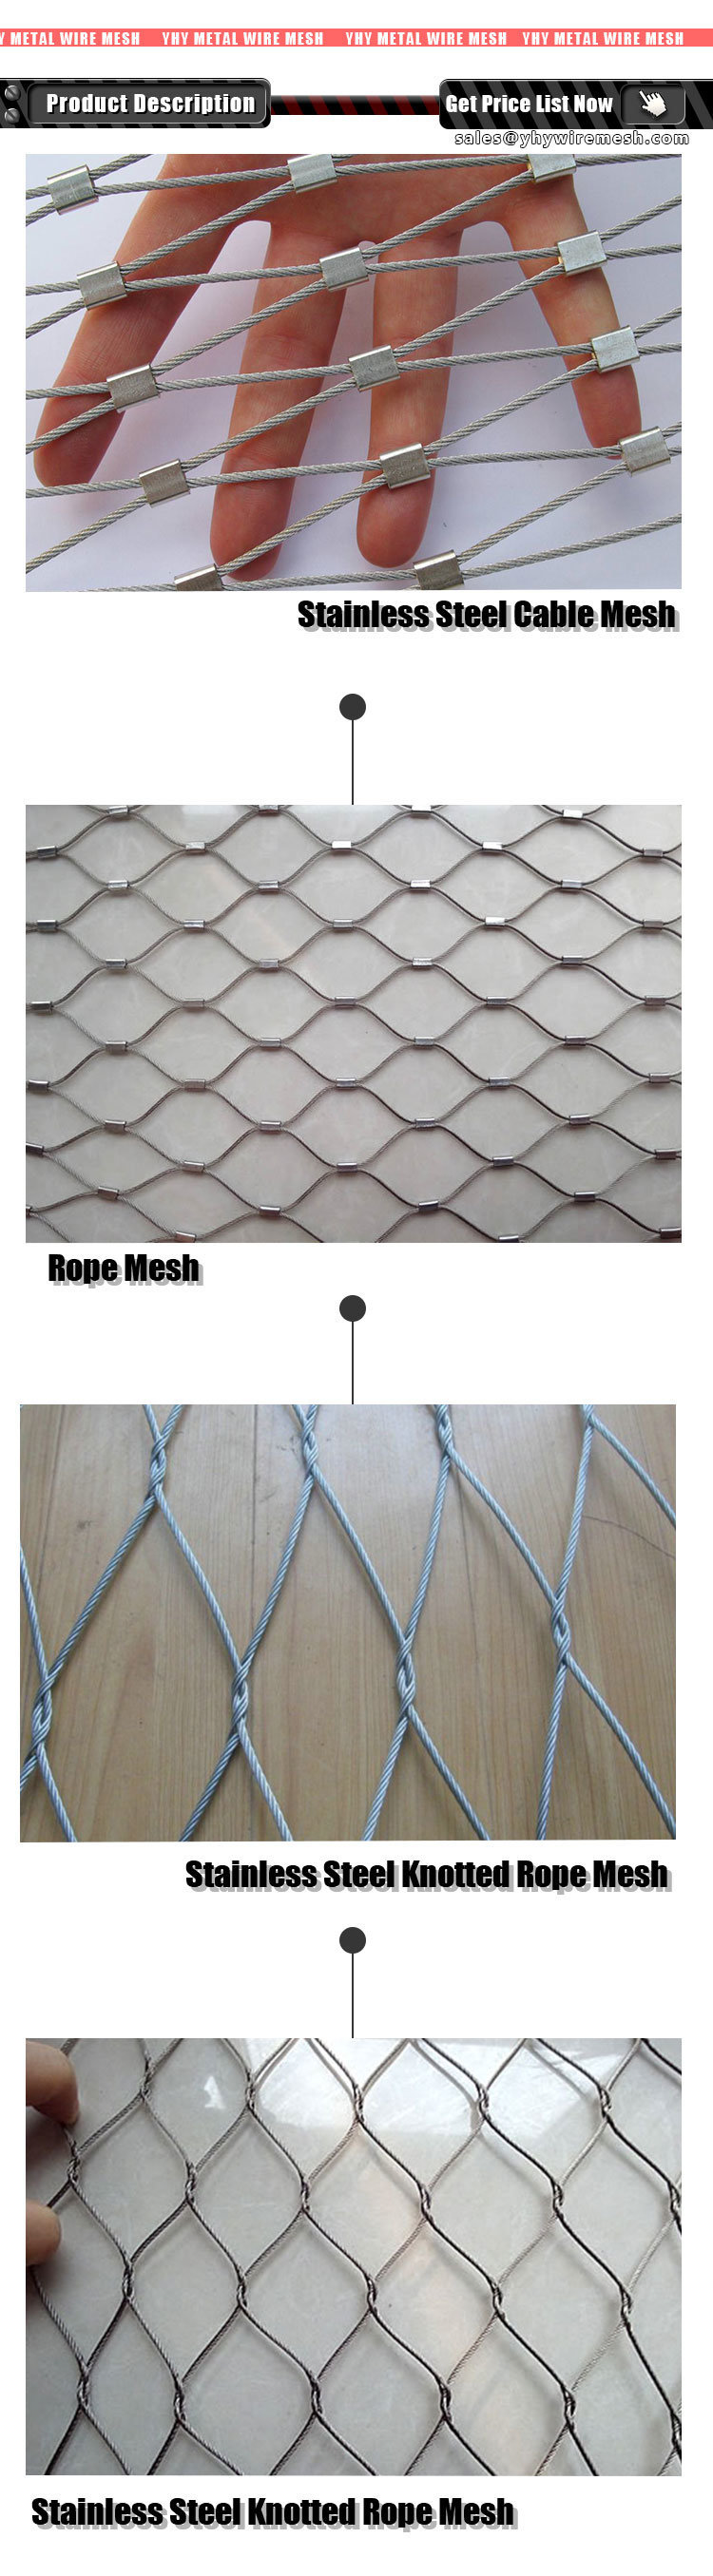 Stainless Steel Cable Net Tubular Frame - China Woven Rope Mesh ...